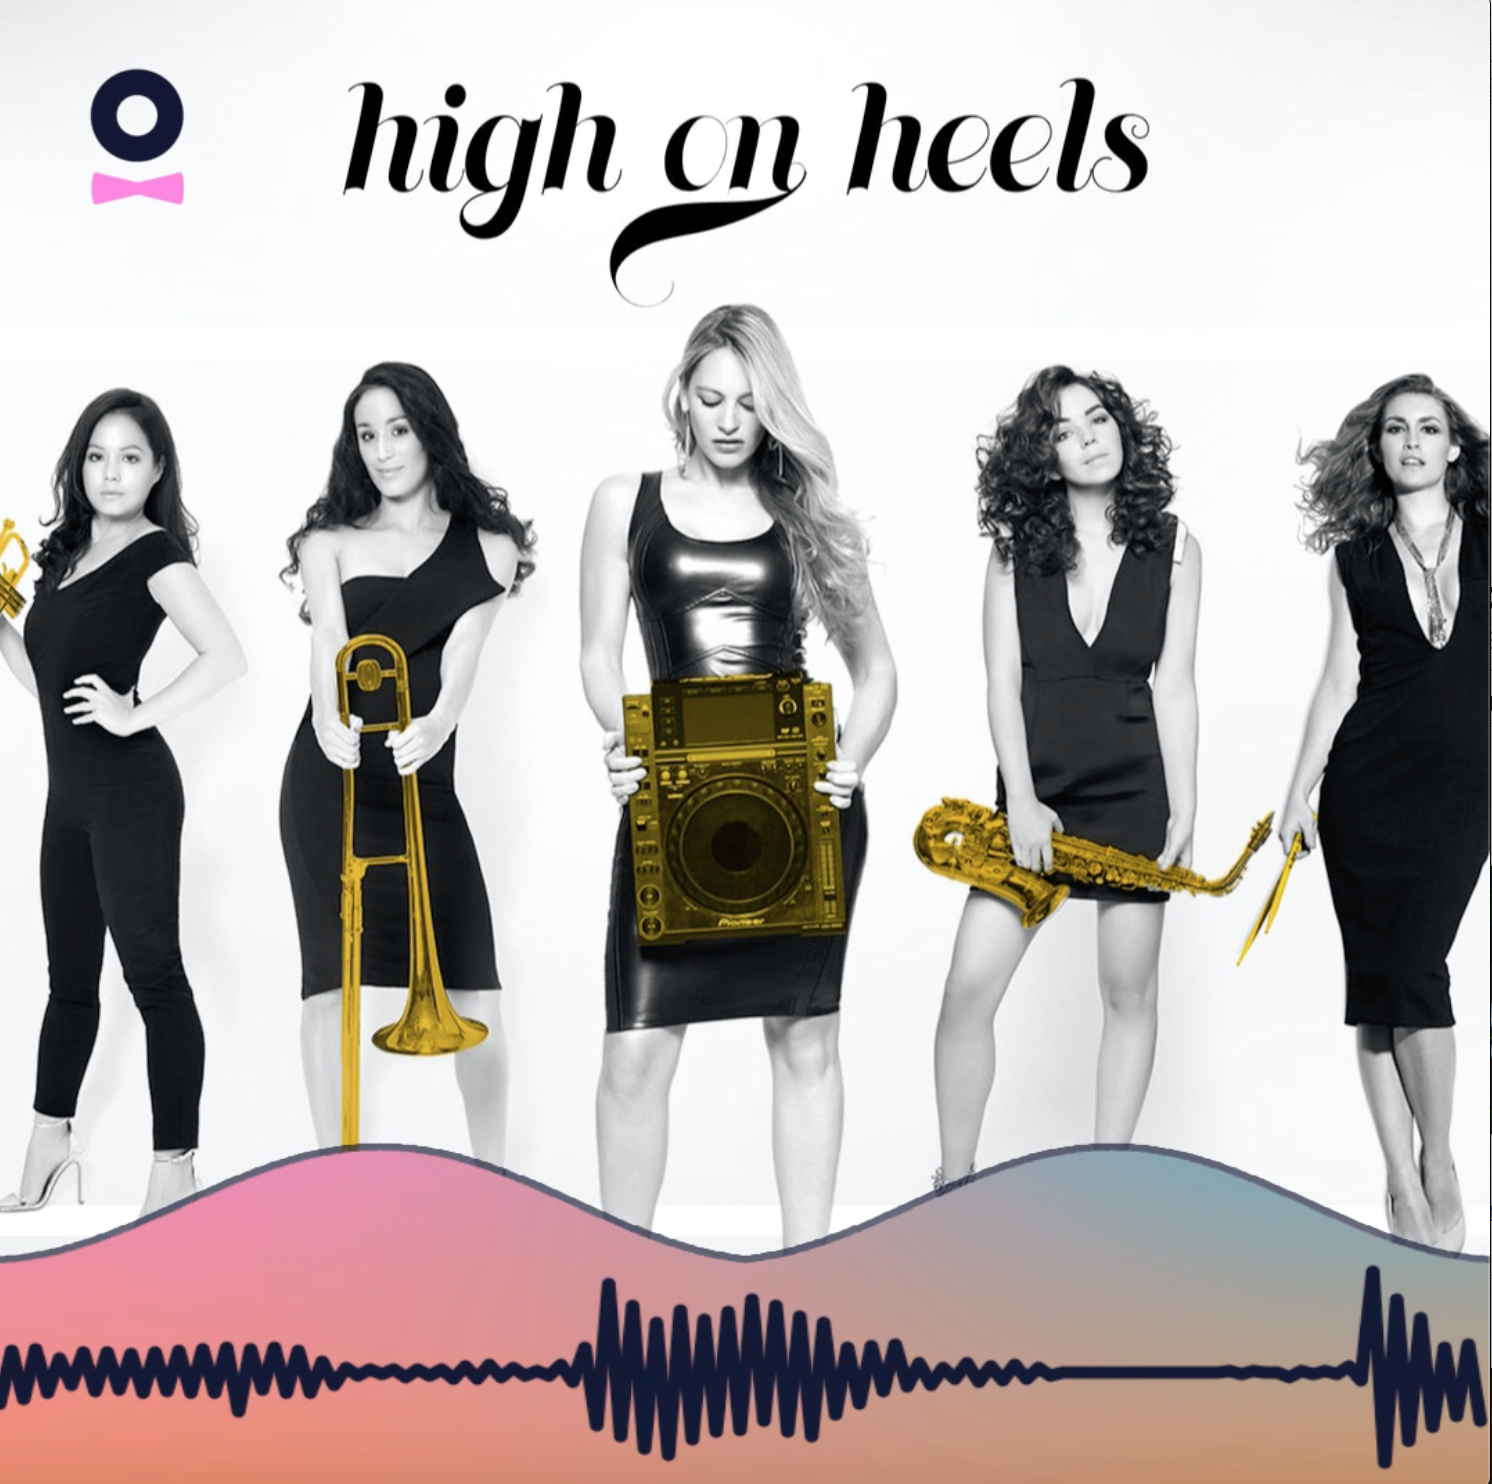 Hear The Voice Behind The Biz: High on Heels